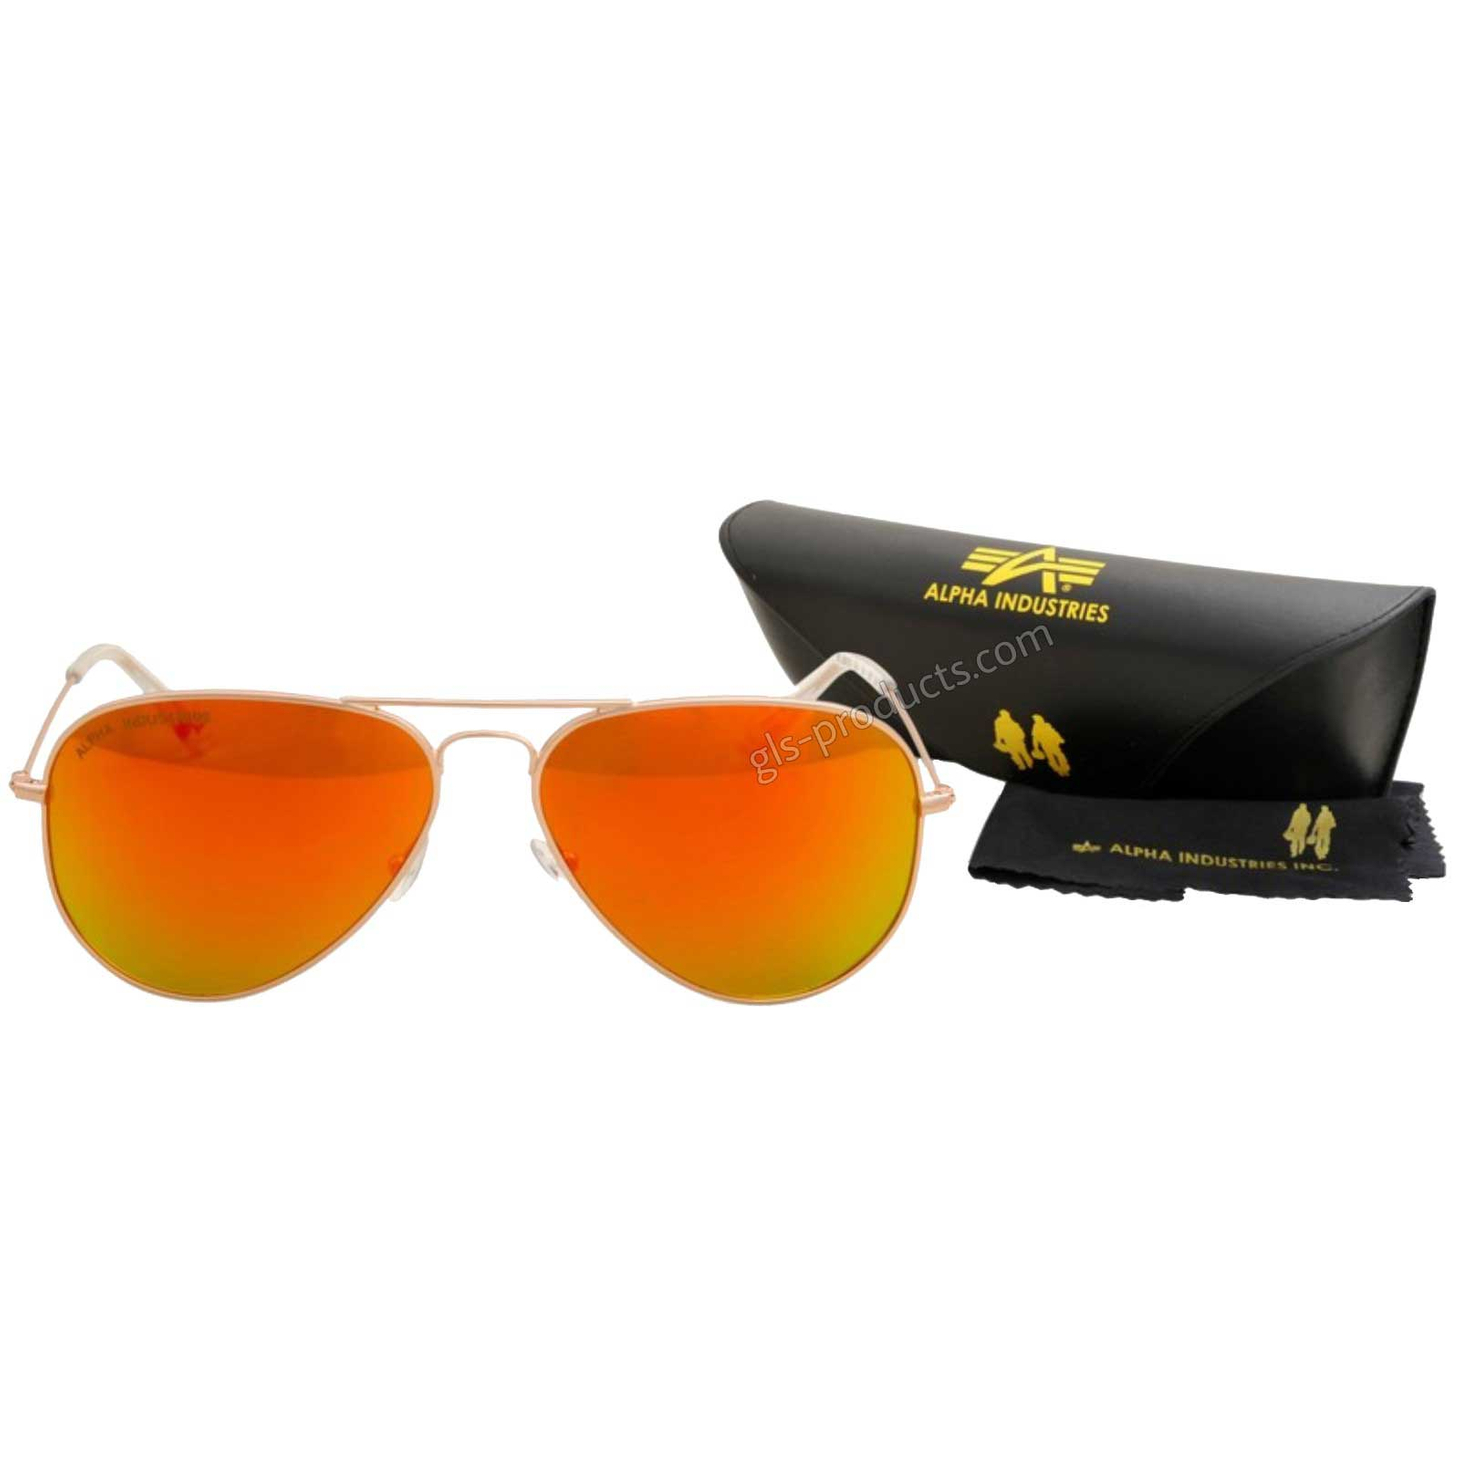 Alpha Top Gun Sunglasses mirrored 158904 – Picture 1